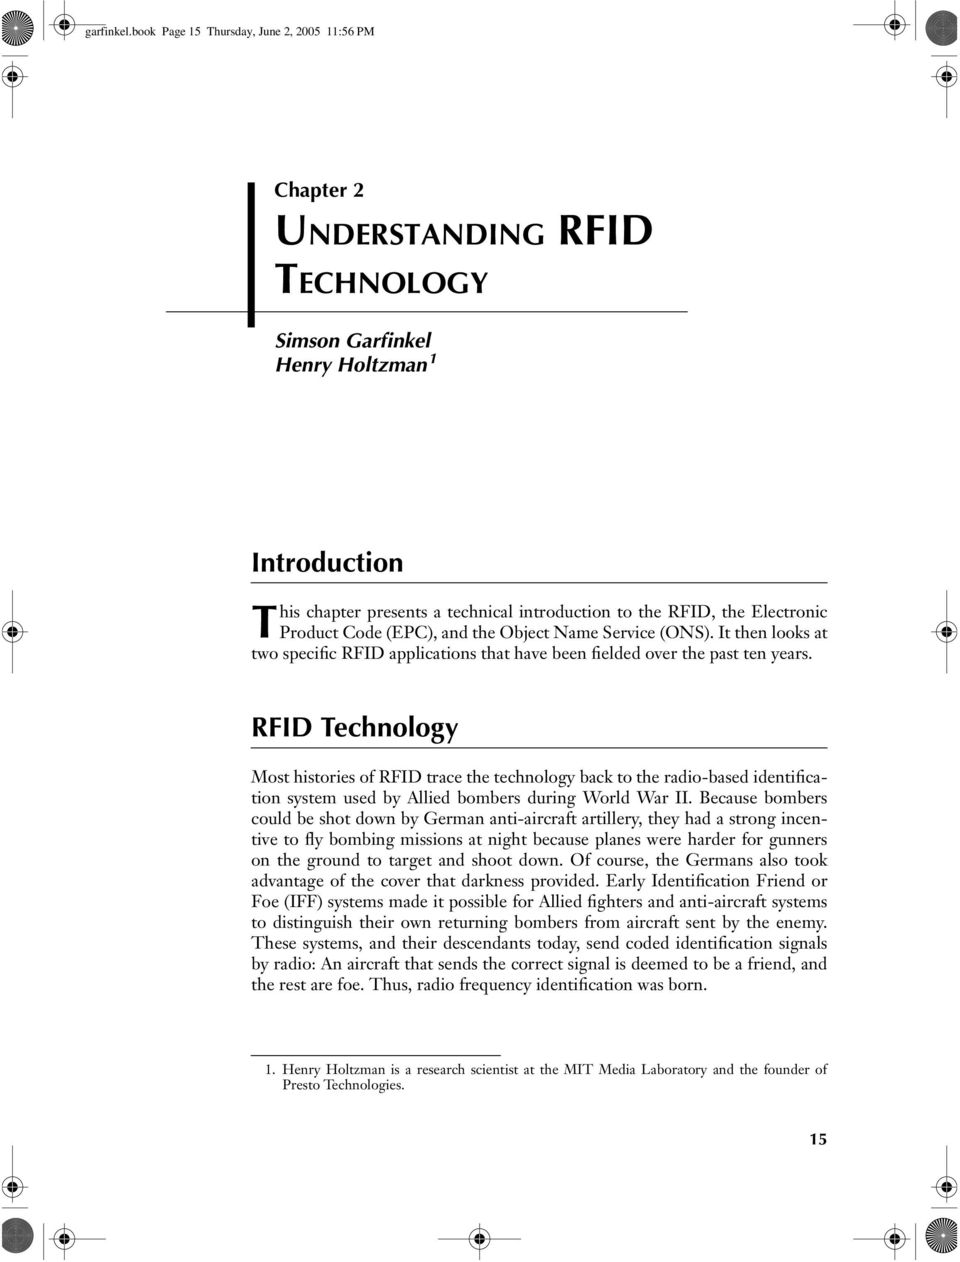 Electronic Product Code (EPC), and the Object Name Service (ONS). It then looks at two specific RFID applications that have been fielded over the past ten years.